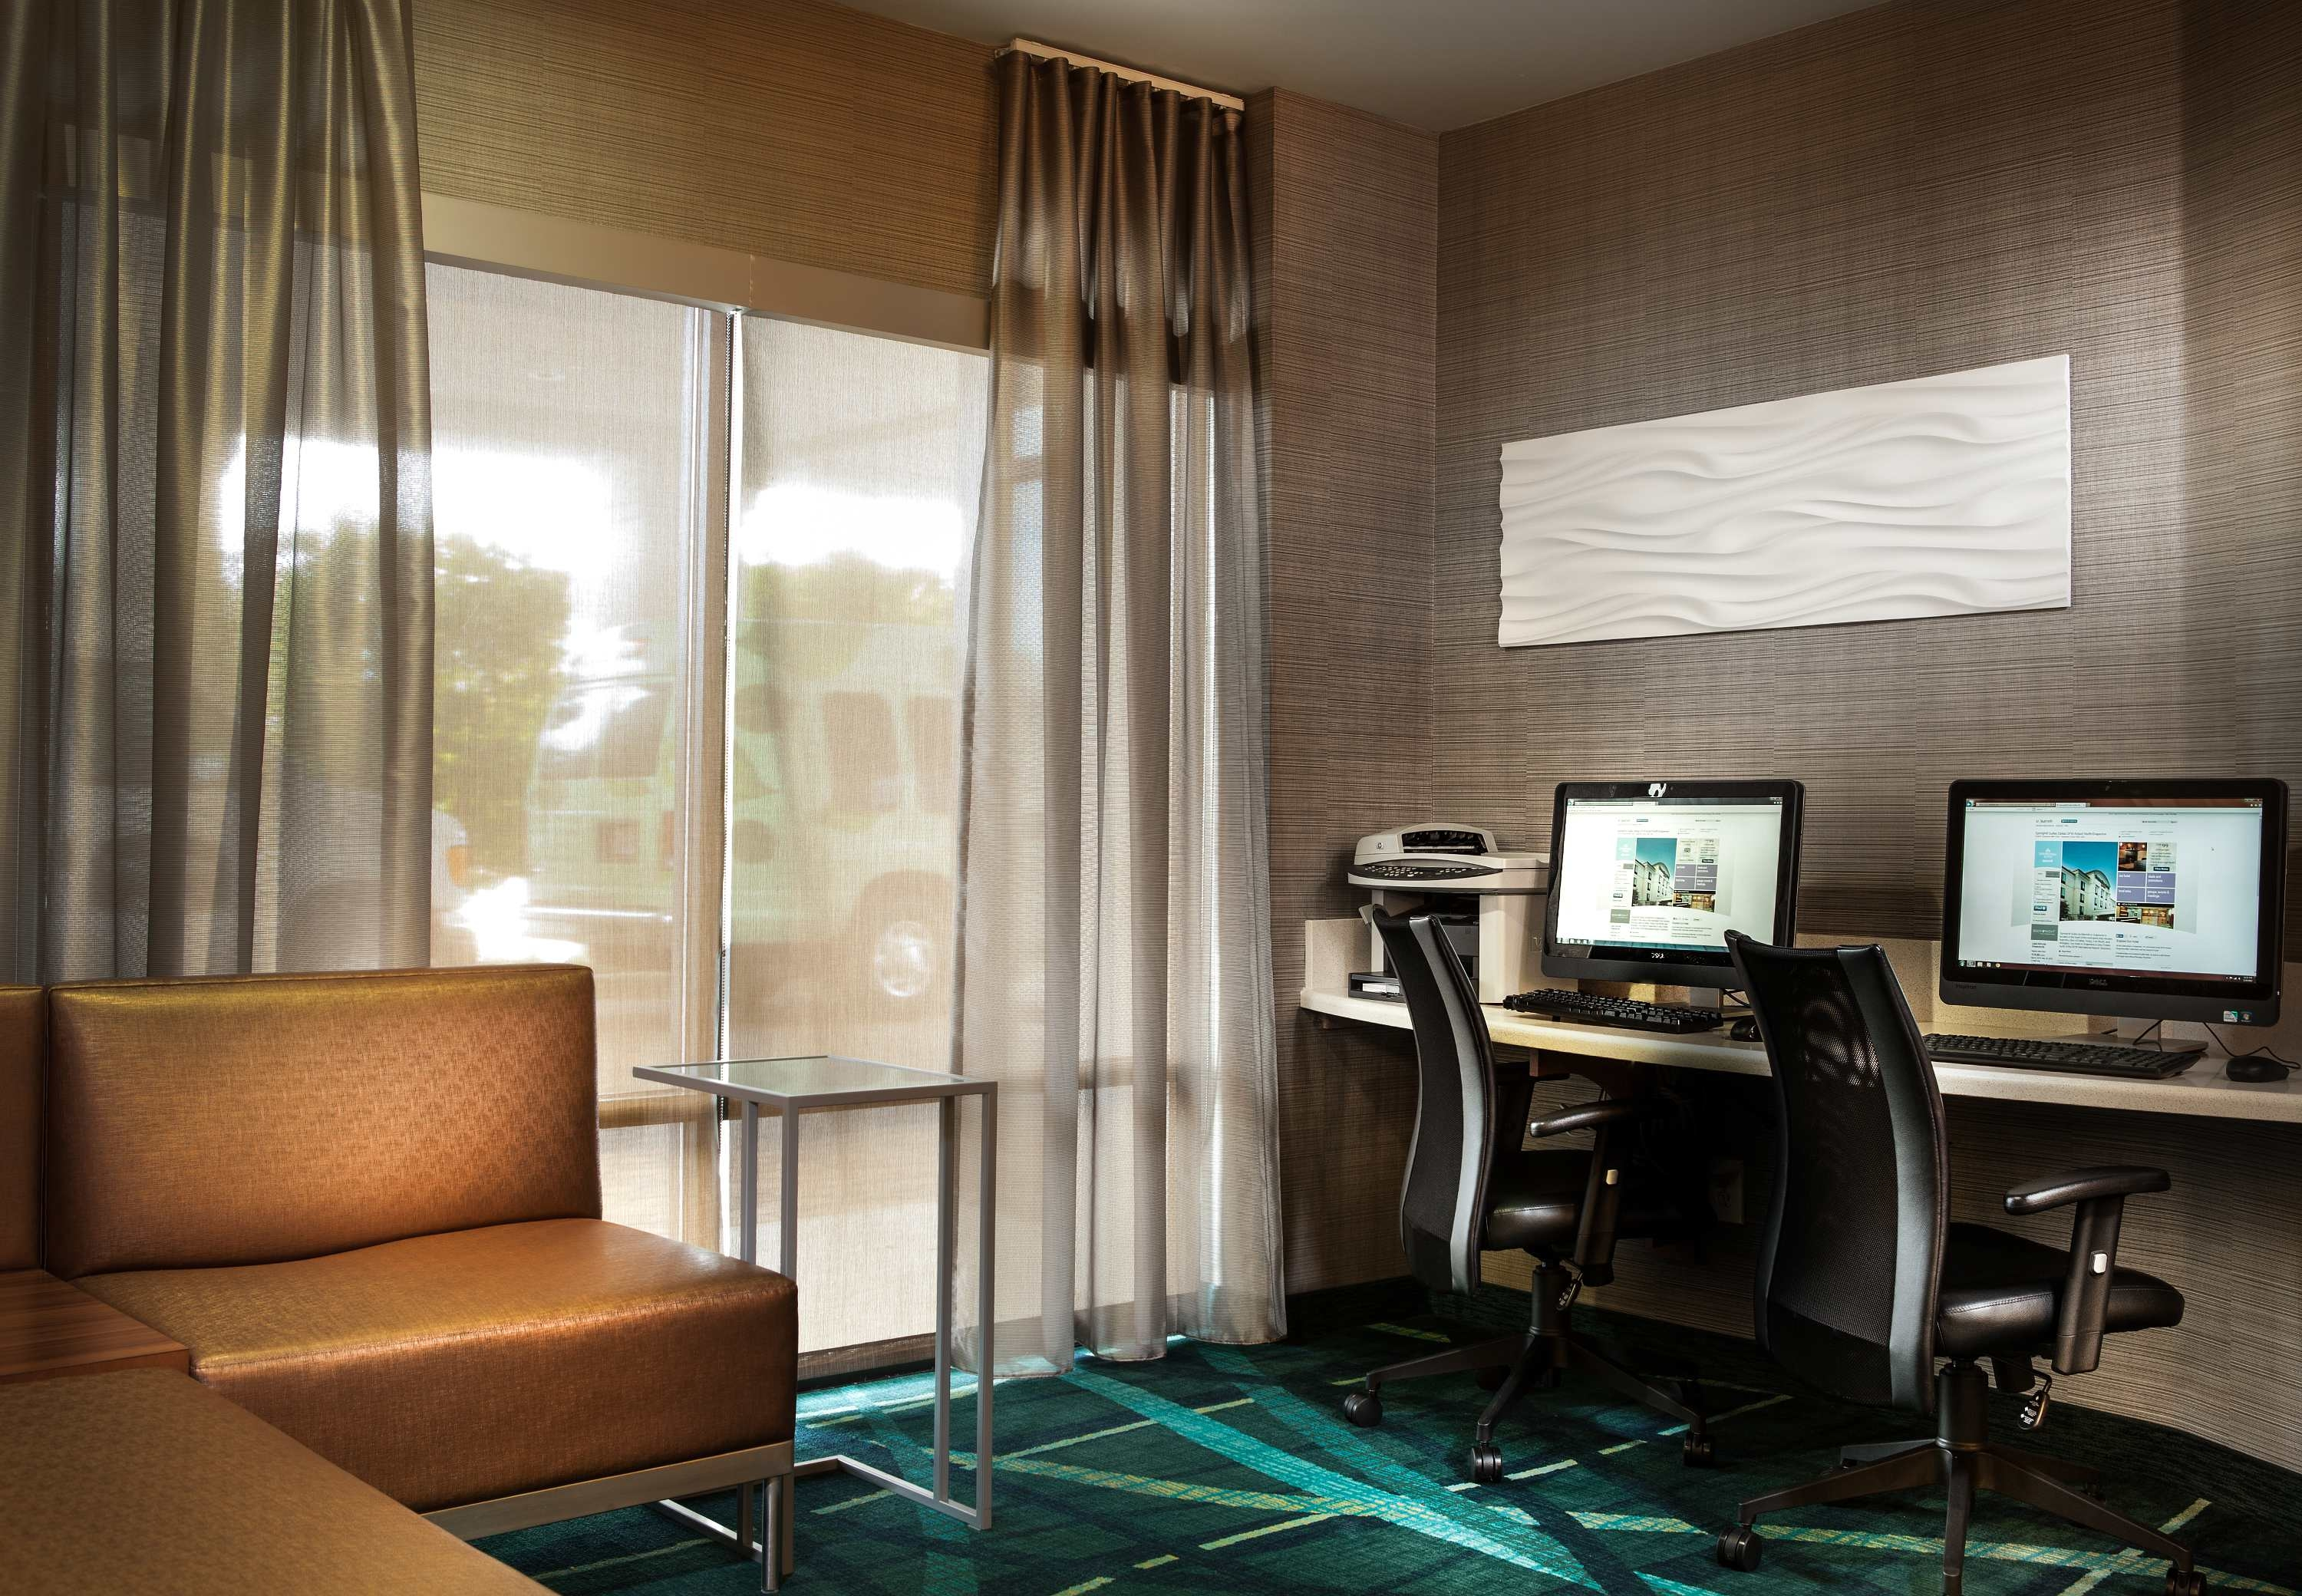 SpringHill Suites by Marriott Dallas DFW Airport North/Grapevine image 6